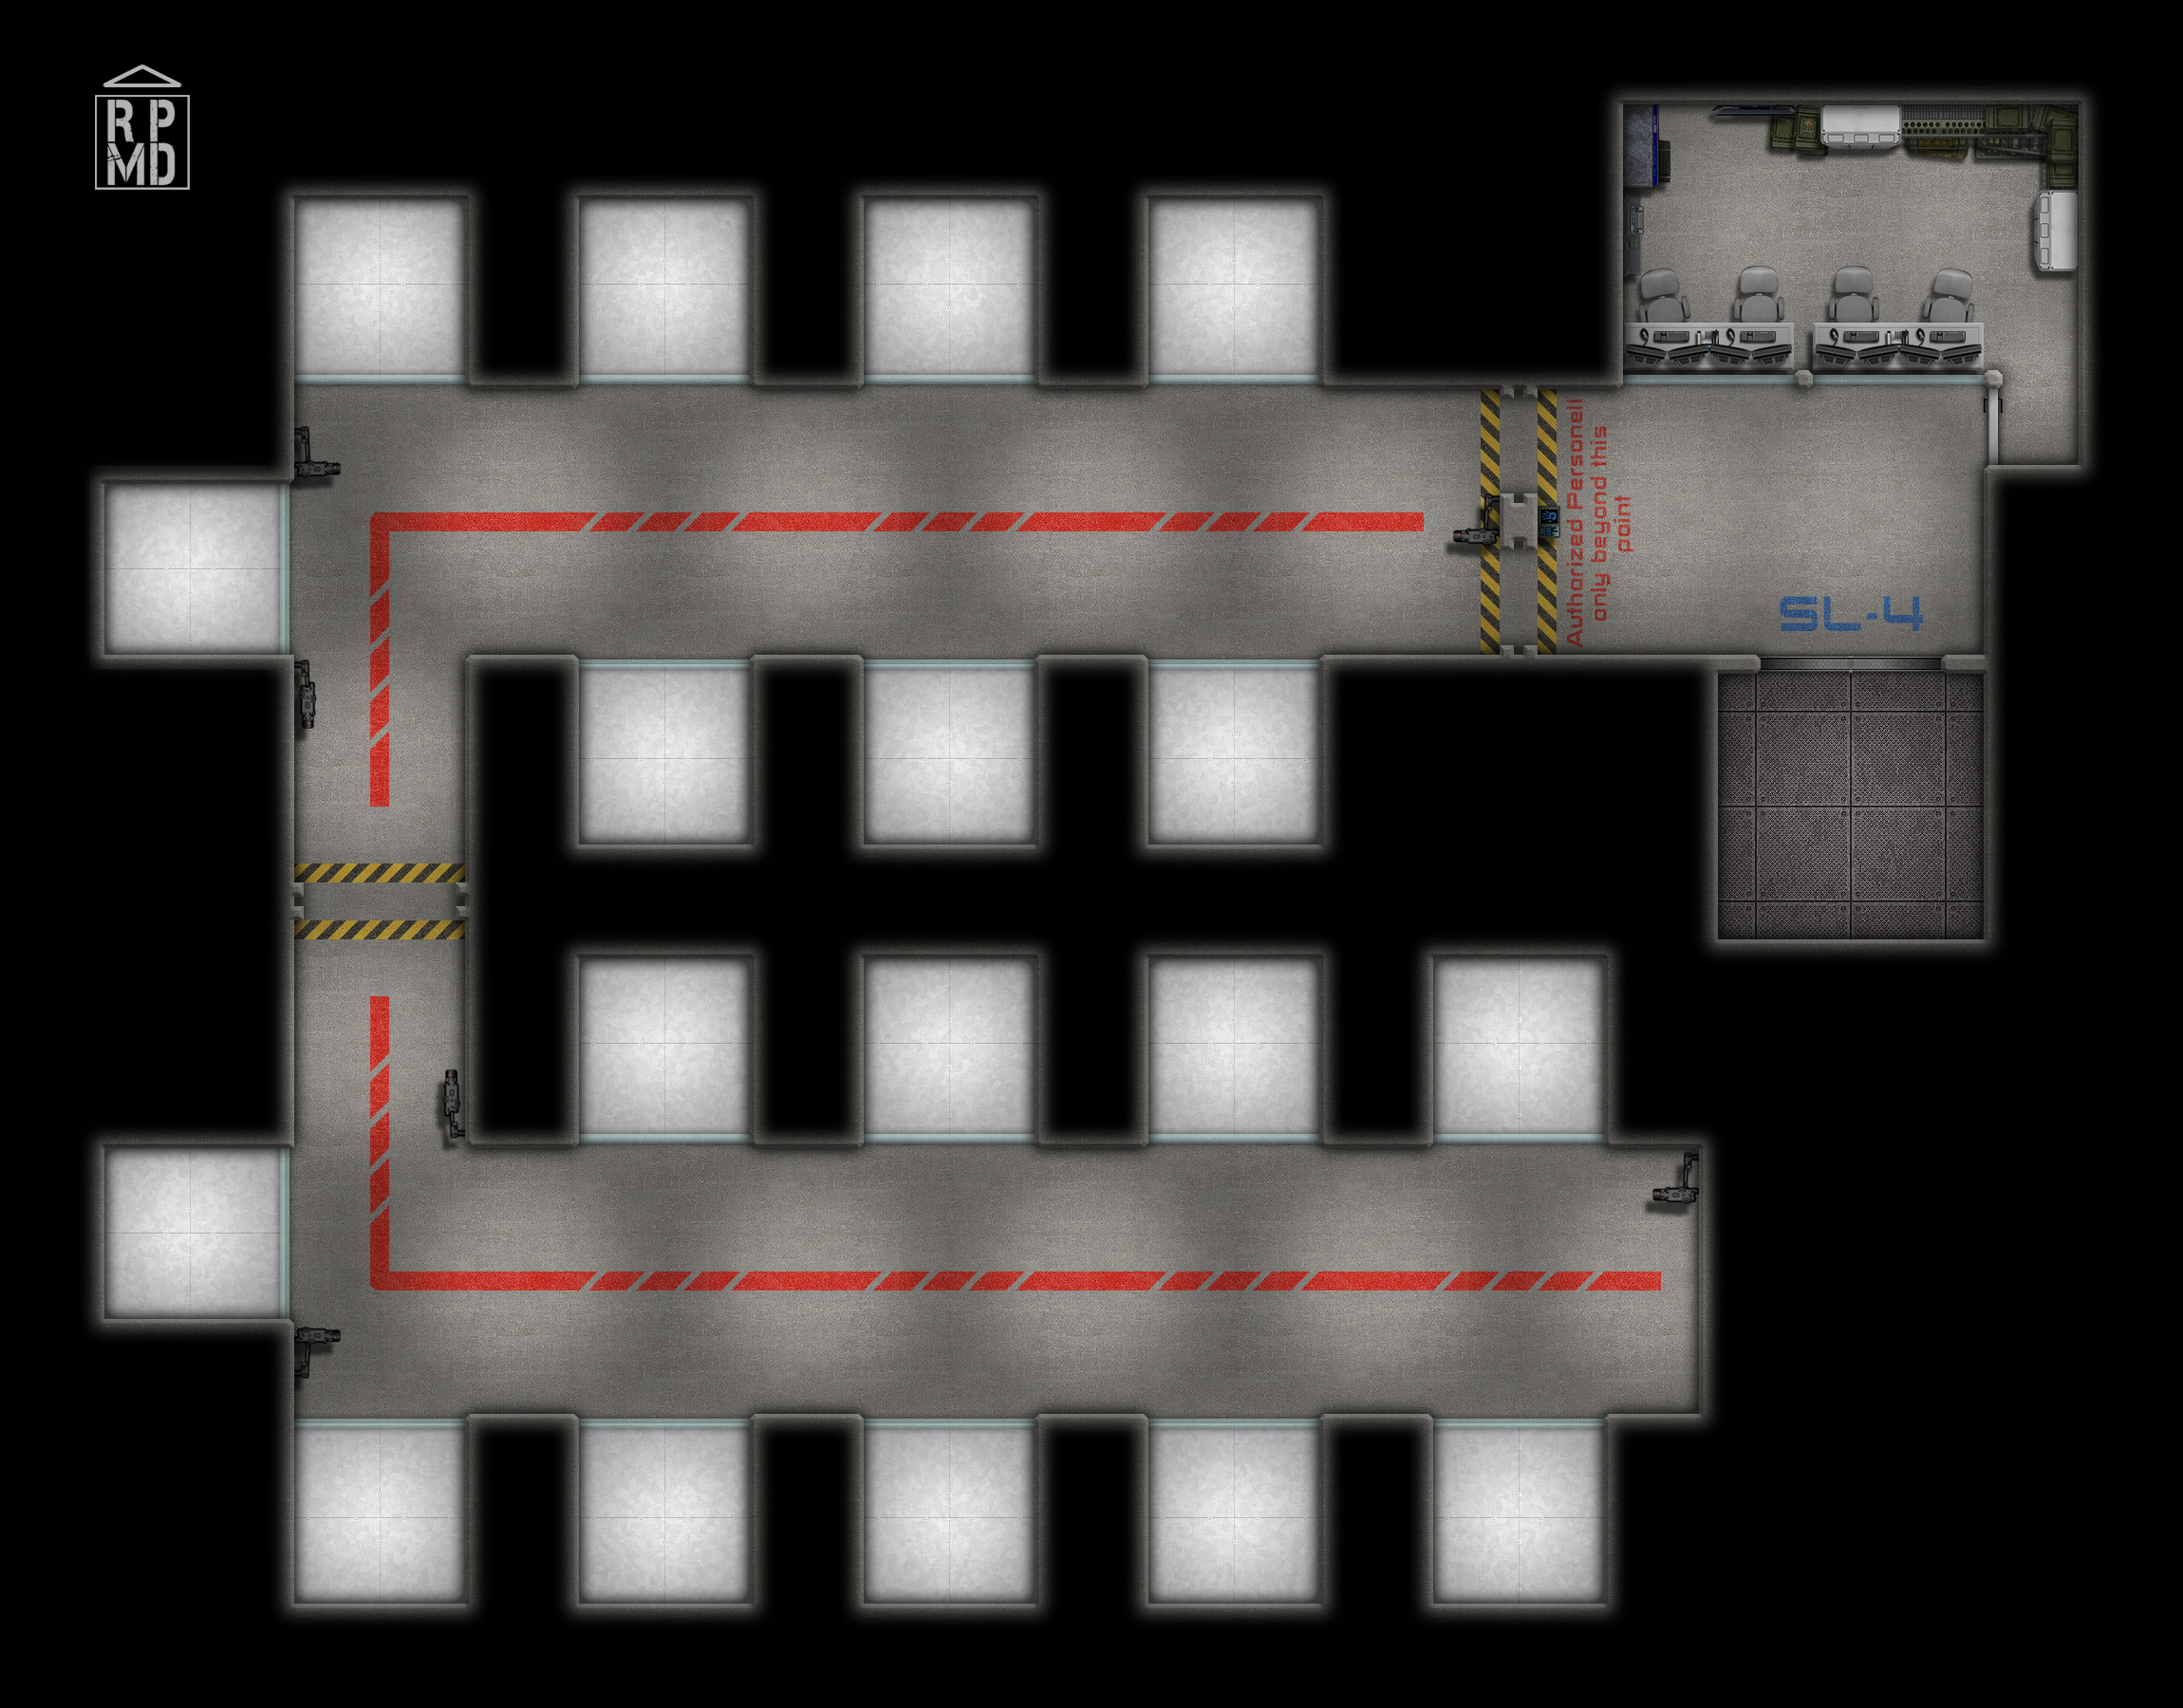 military_bio_research_base__sub_level_4_by_ronpeppermd_de25ler.jpg